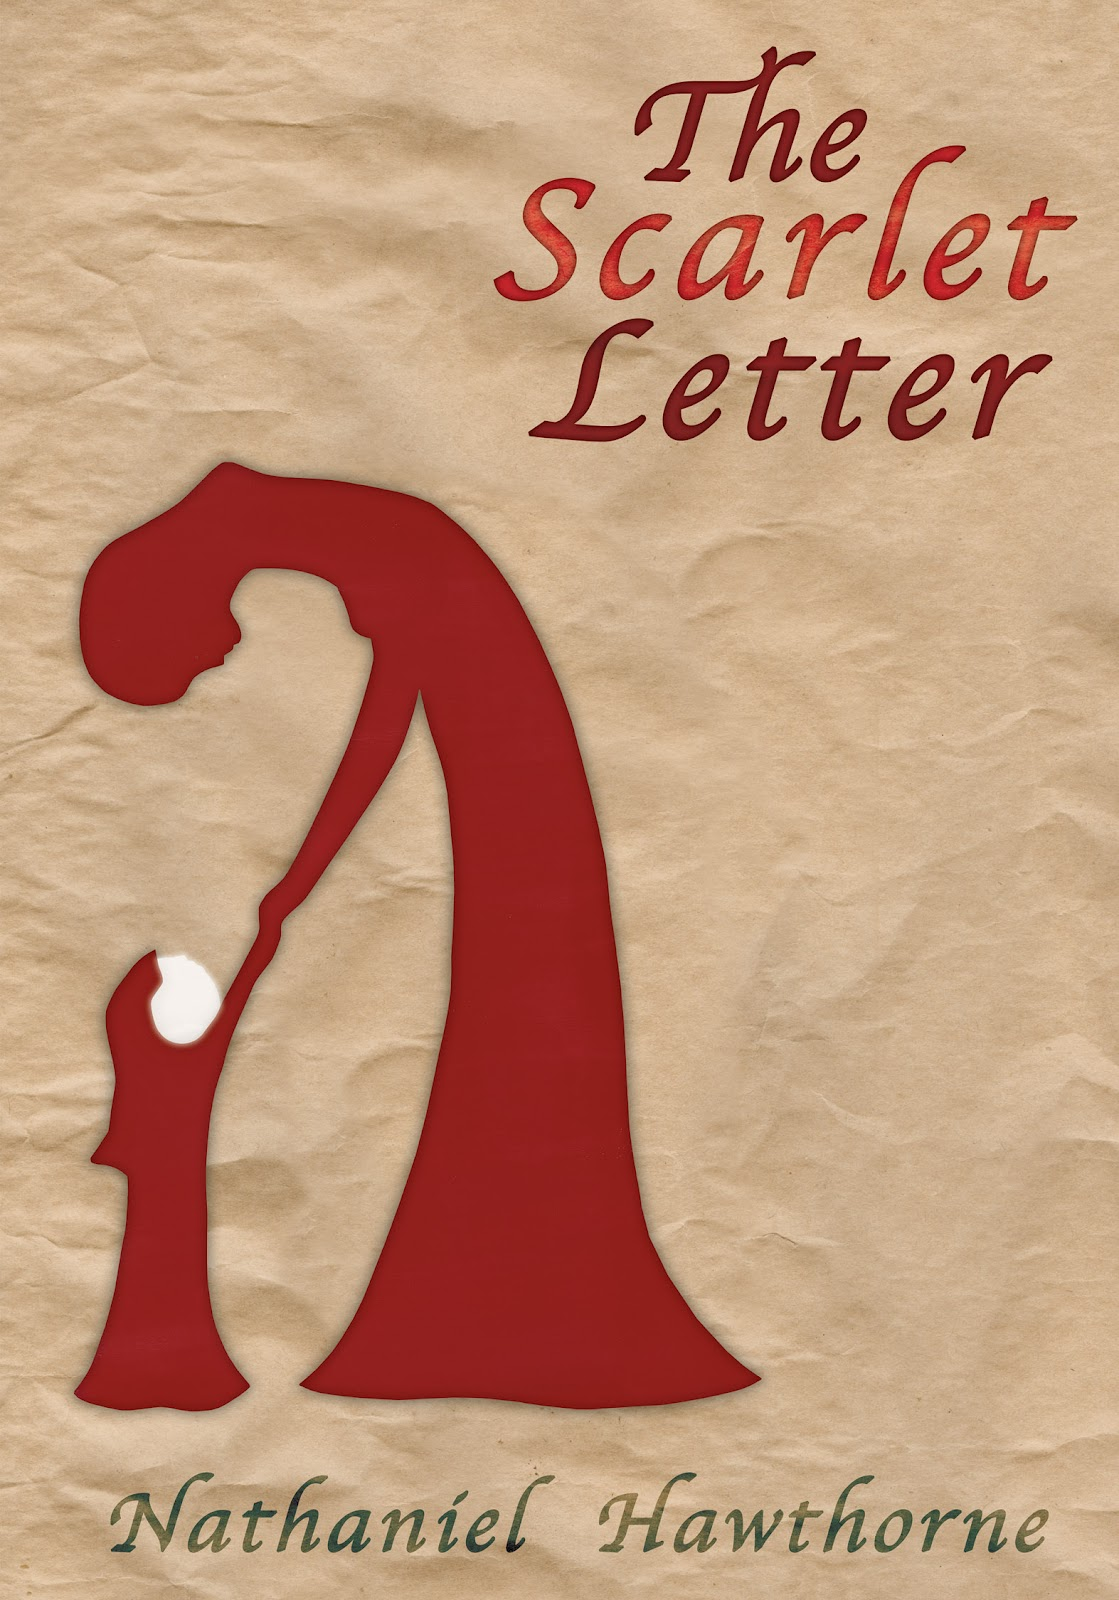 Scarlet Letter Book Cover Ideas ~ Fresh the scarlet letter book cover examples